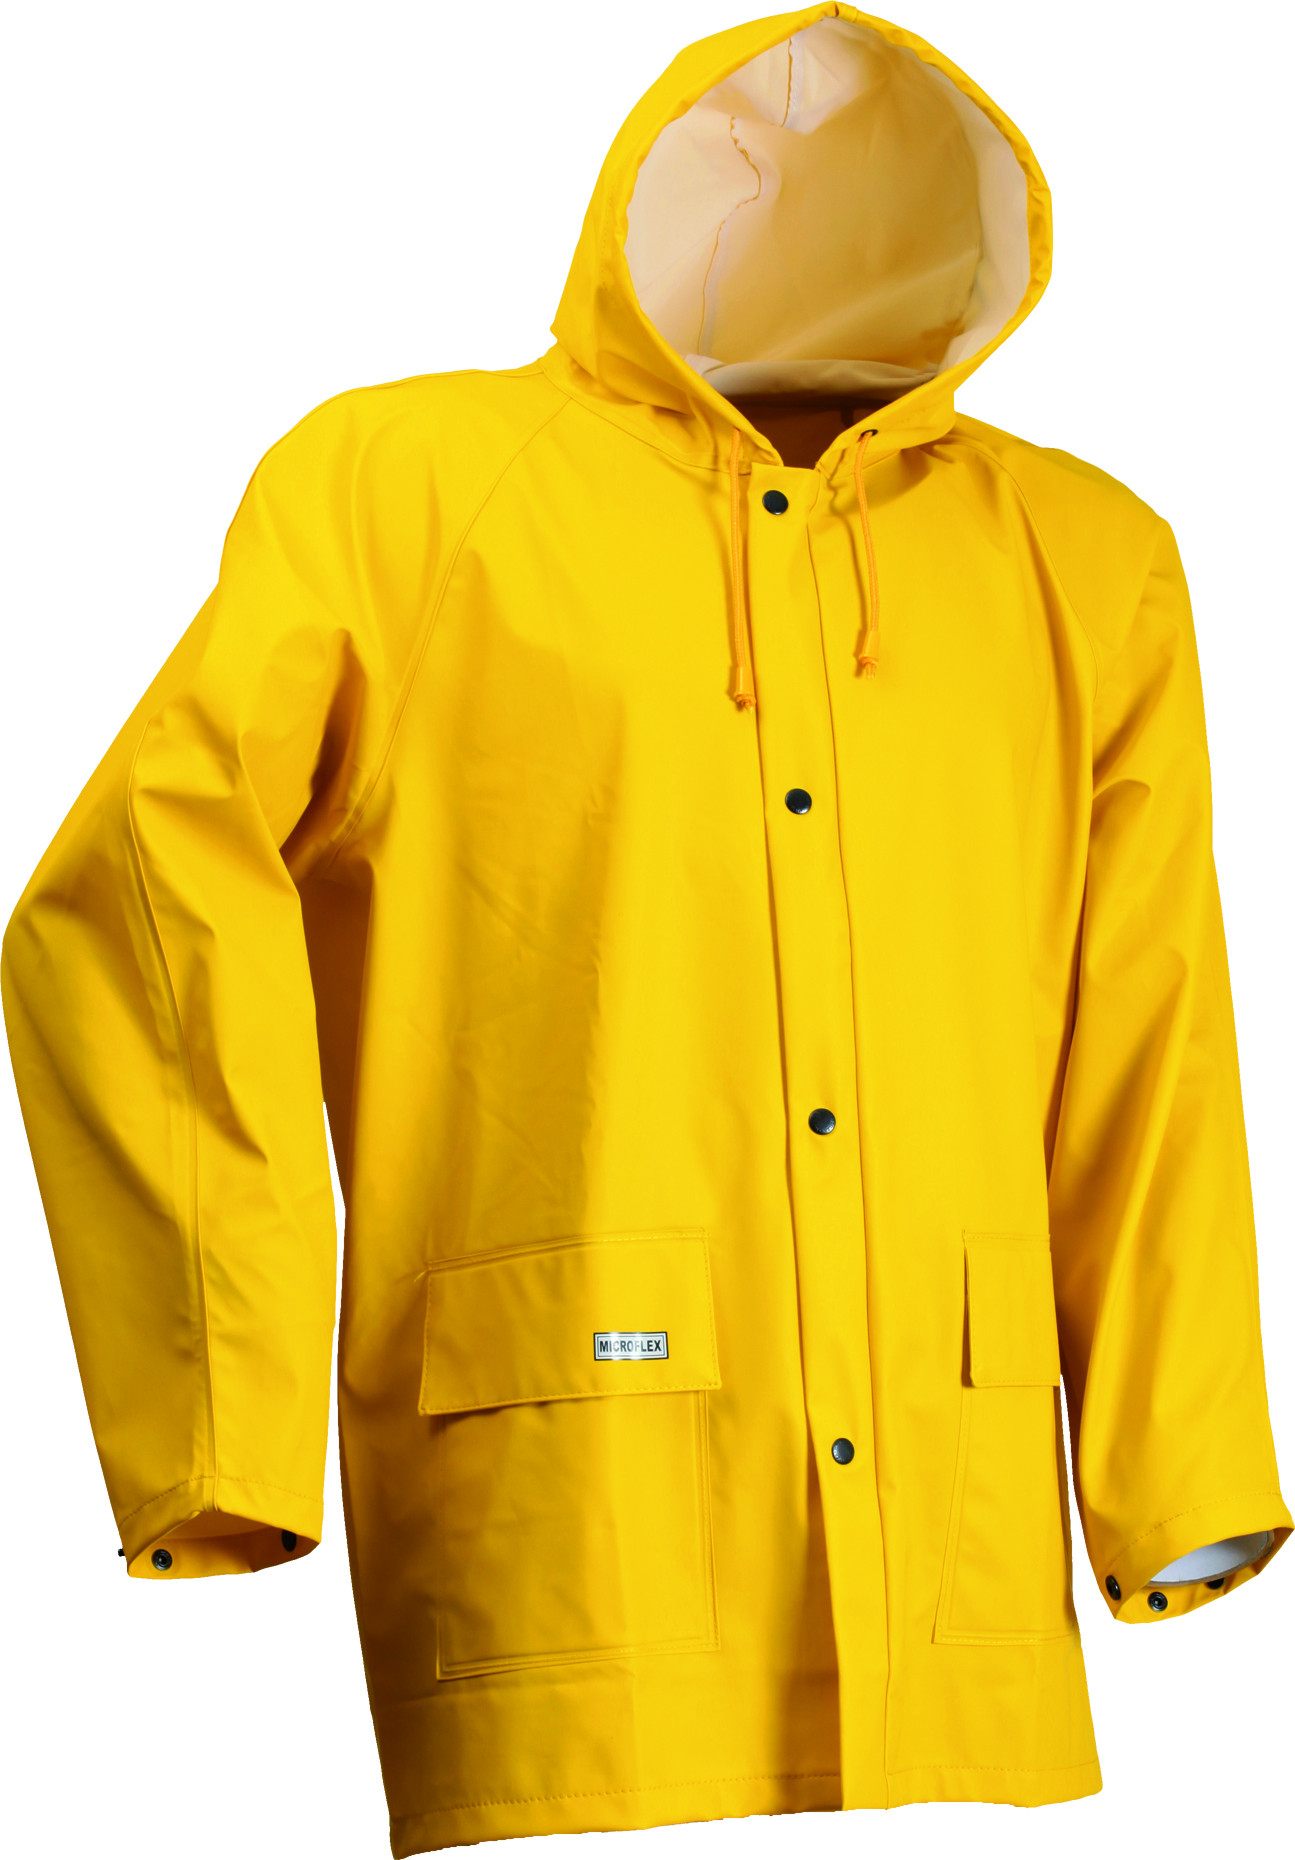 Microflex LR48 PU Waterproof Jacket Yellow - Foul Weather ...